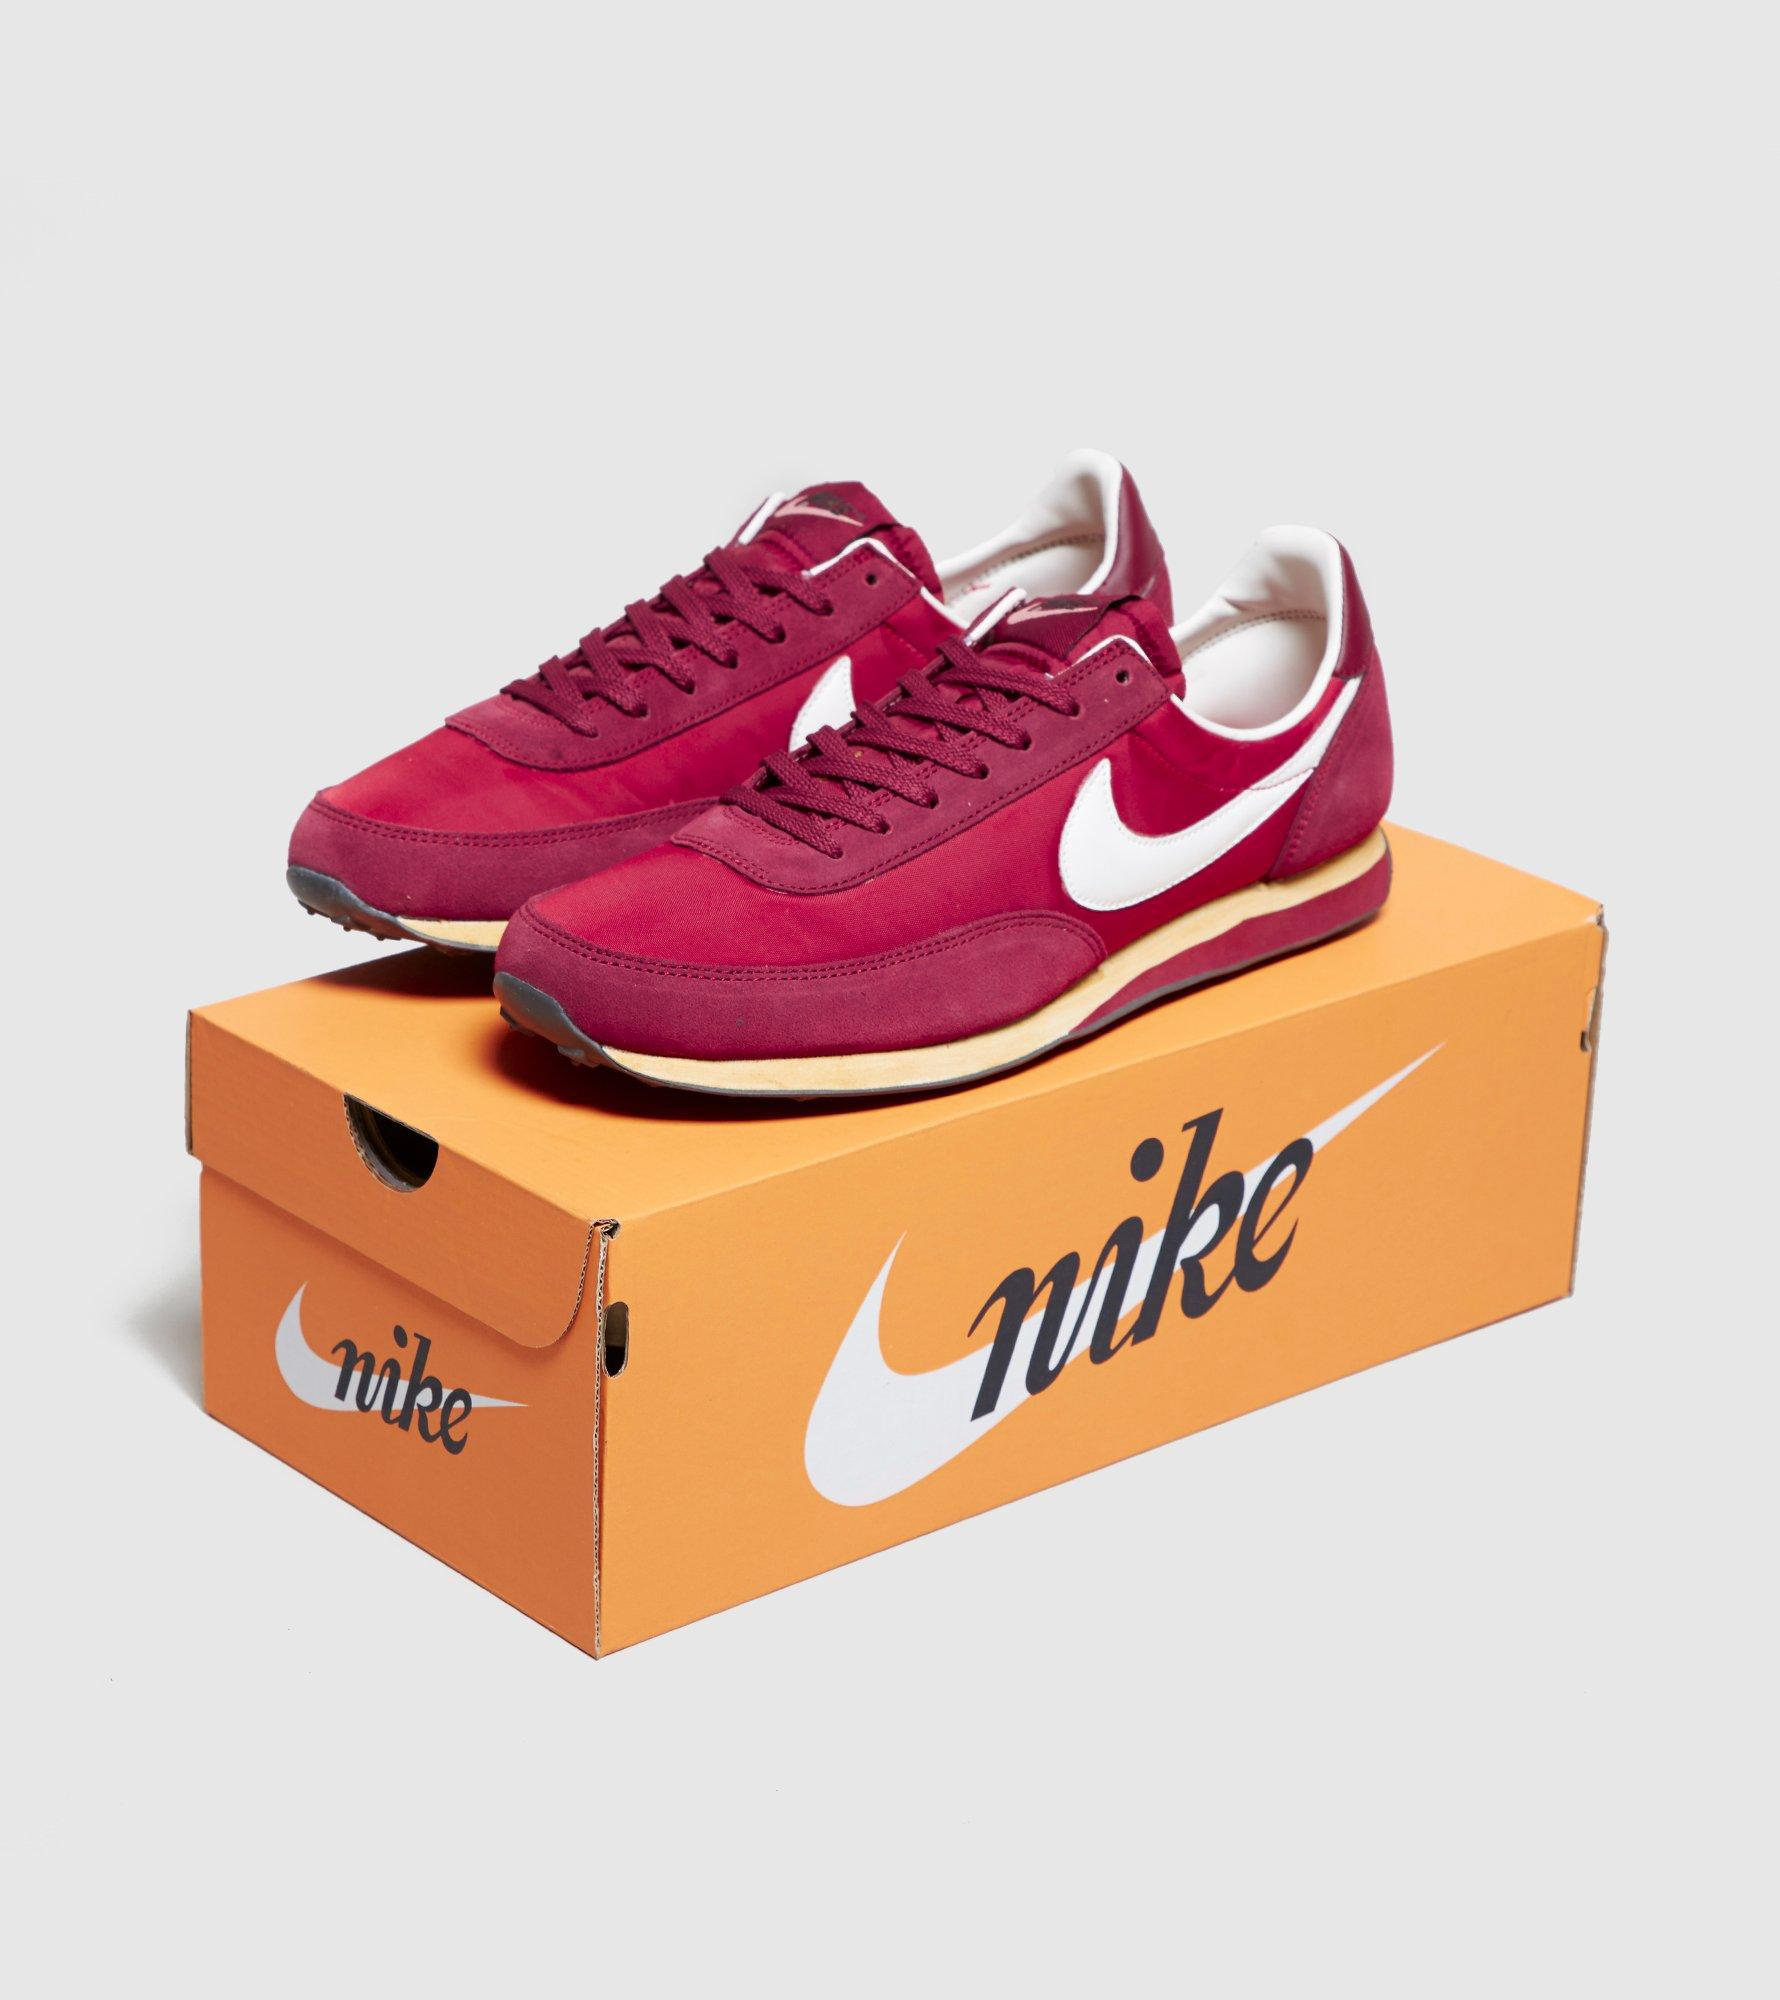 28e1b7fbab05c Lyst - Nike Elite - Size  Exclusive in Red for Men